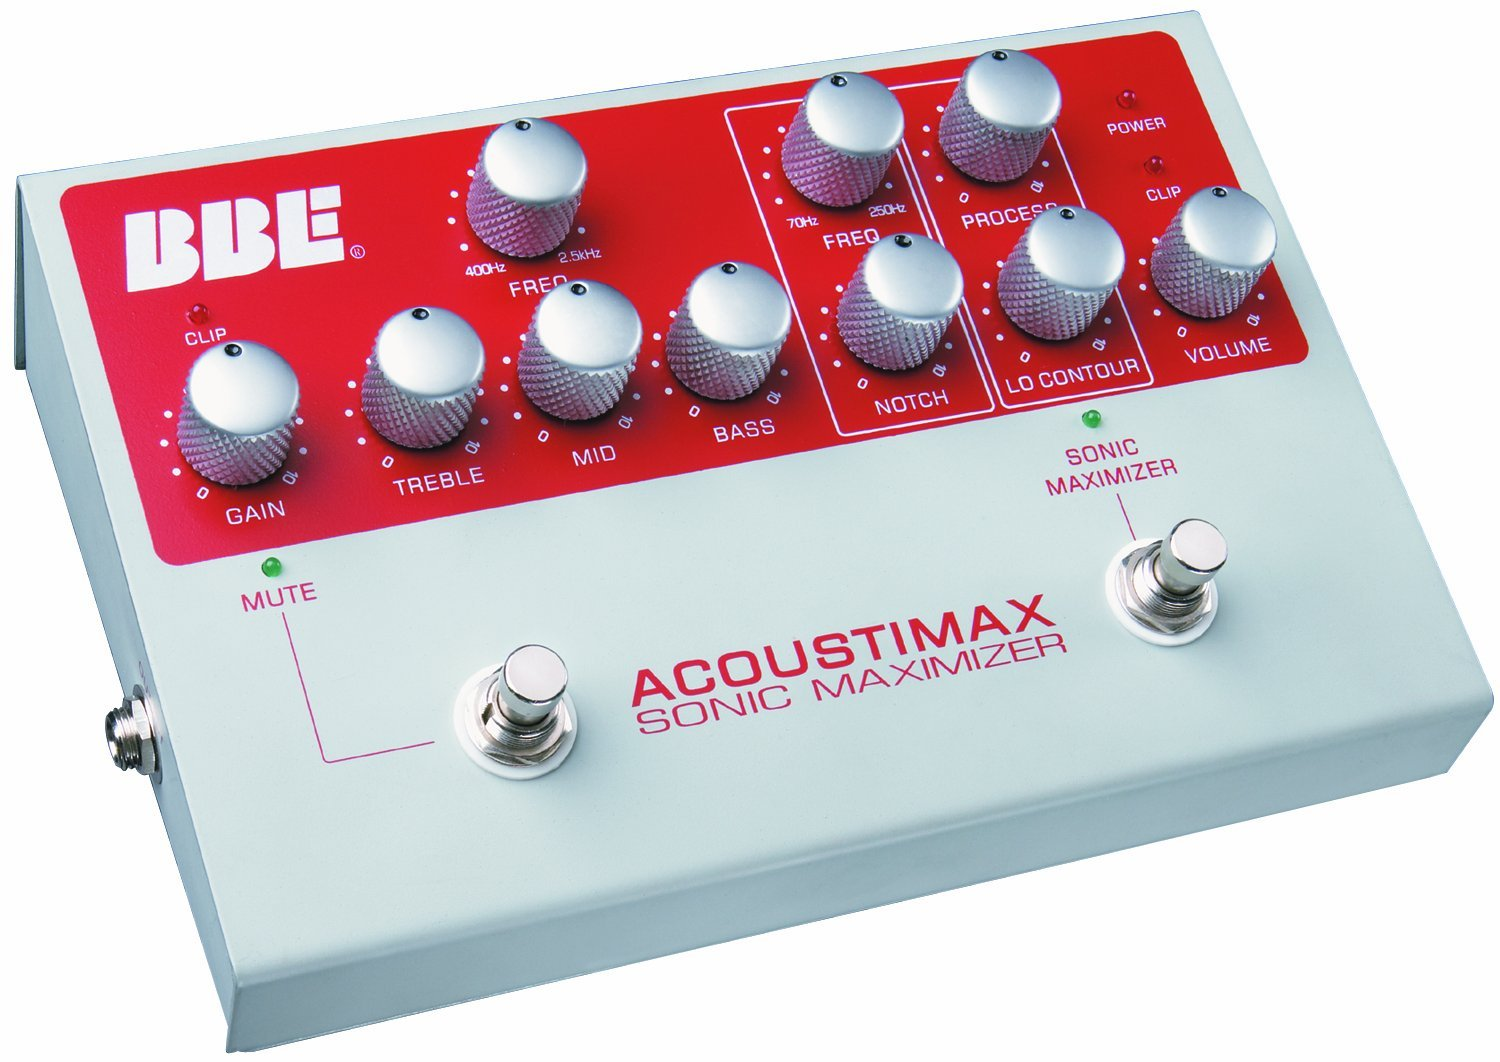 BBE Acoustimax Guitar Pedal